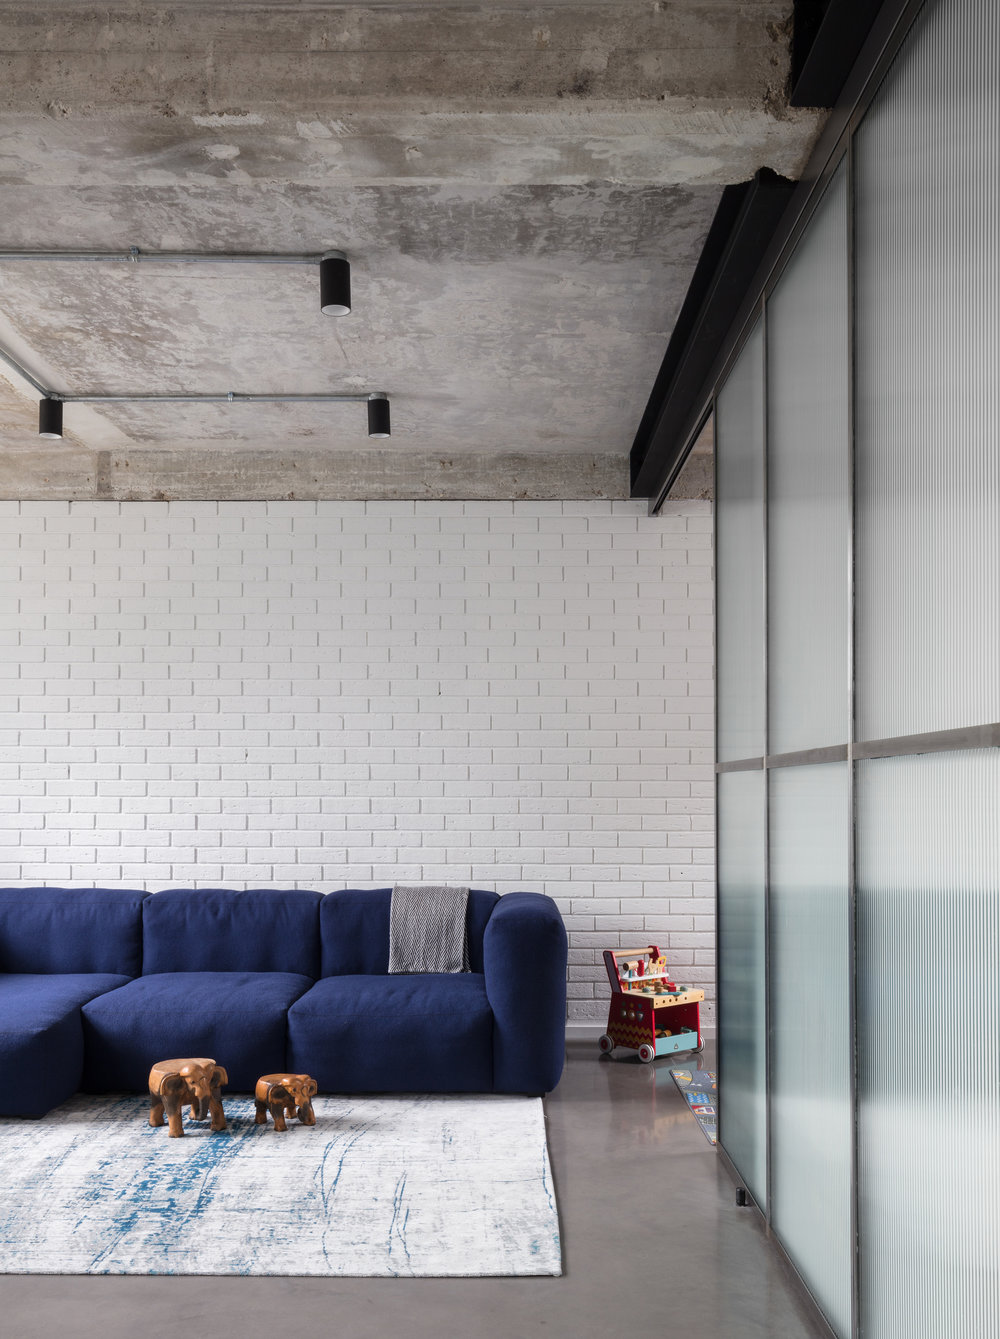 Union-Wharf-Islington-London-Exposed-Concrete-Ceiling-Floor-Hay-Sofa-Interior-Architect.jpg